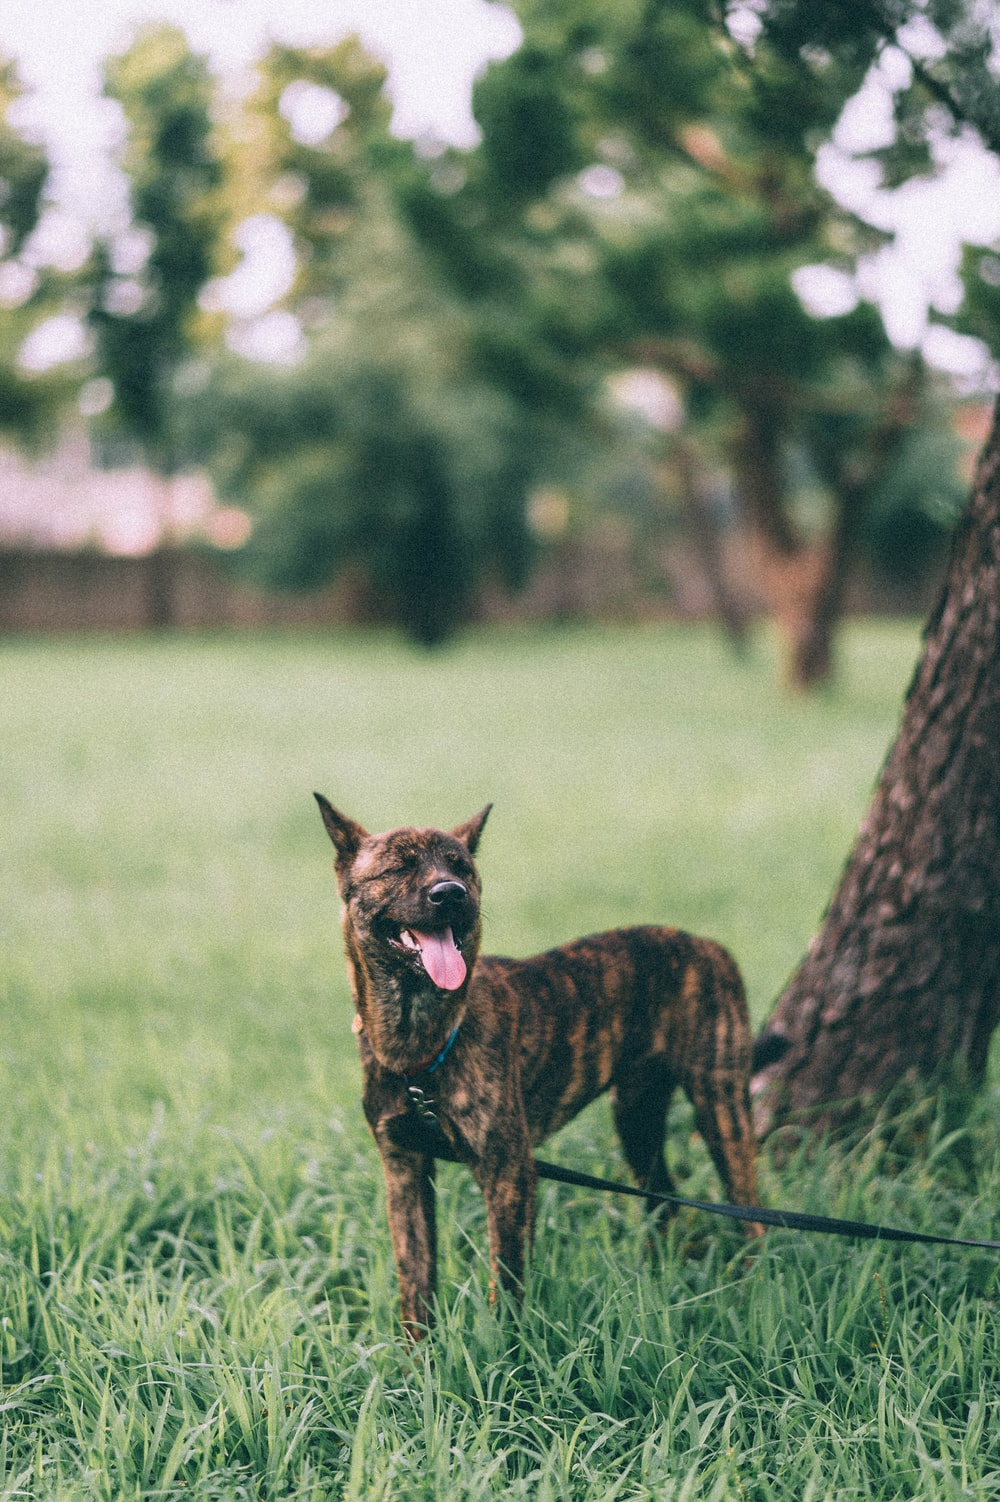 brown and black short coated dog on green grass field during daytime